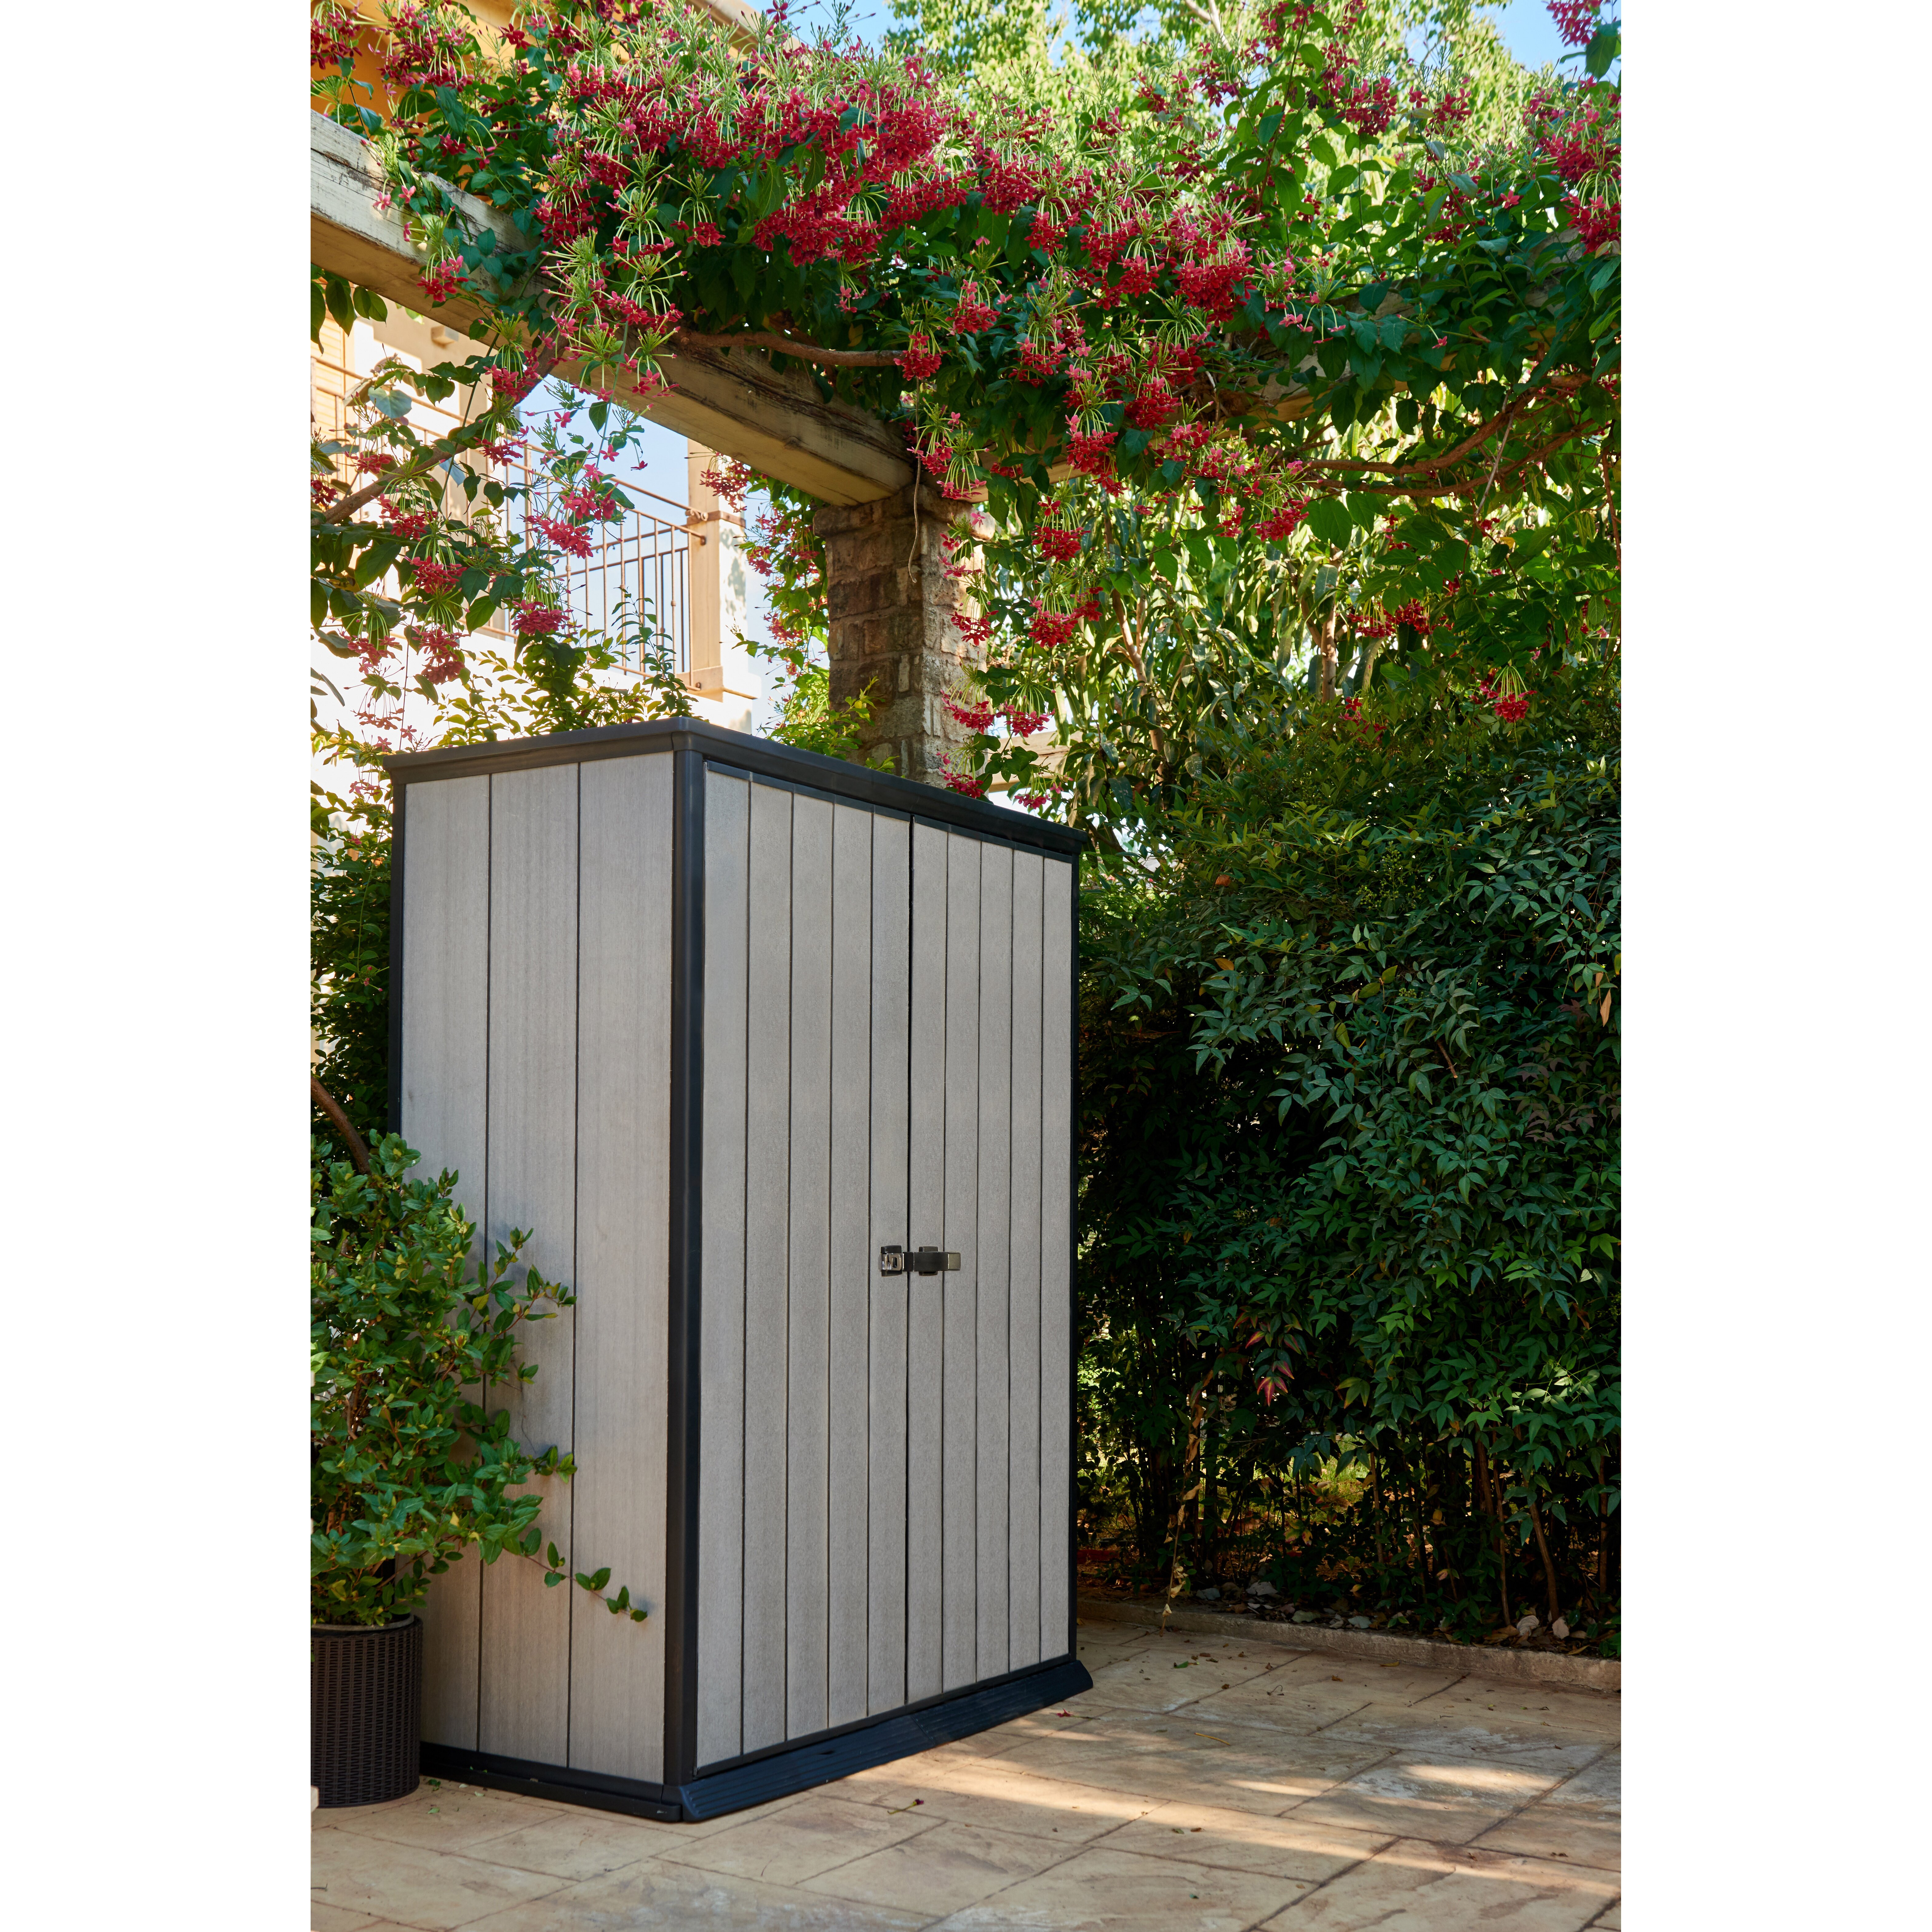 Keter High Store 4 Ft X 2 Ft Resin Storage Shed